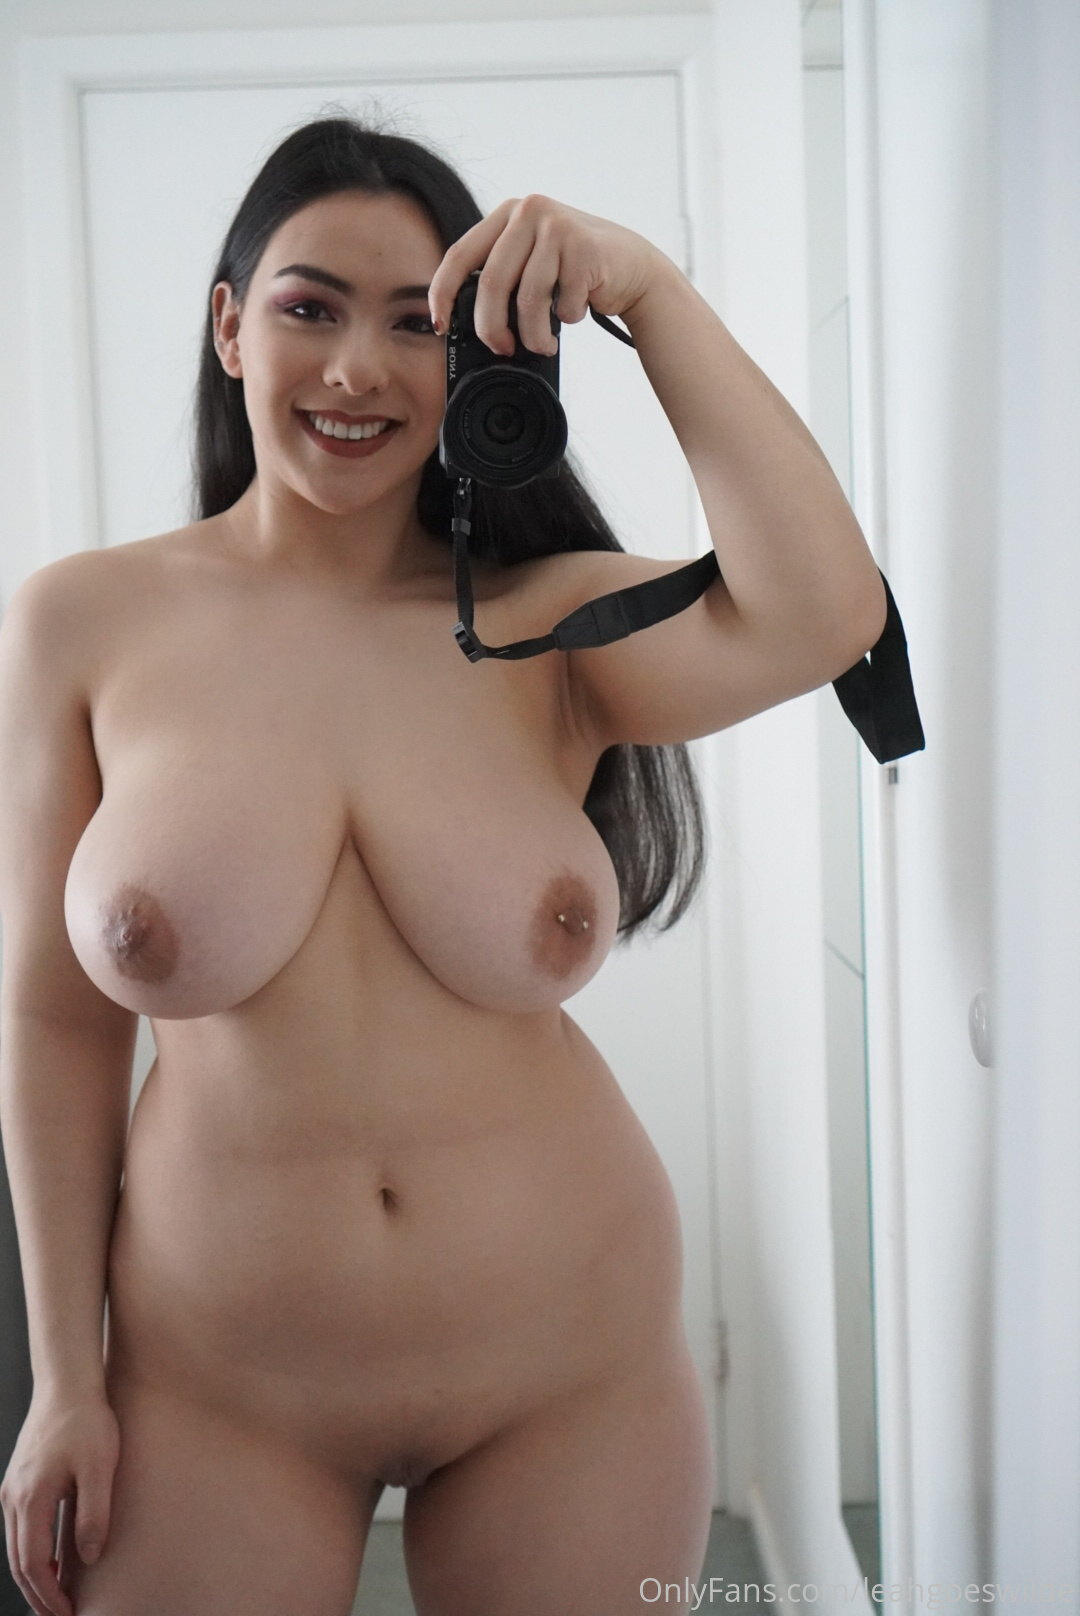 Leahgoeswild Porn OnlyFans Leaked Nudes 70